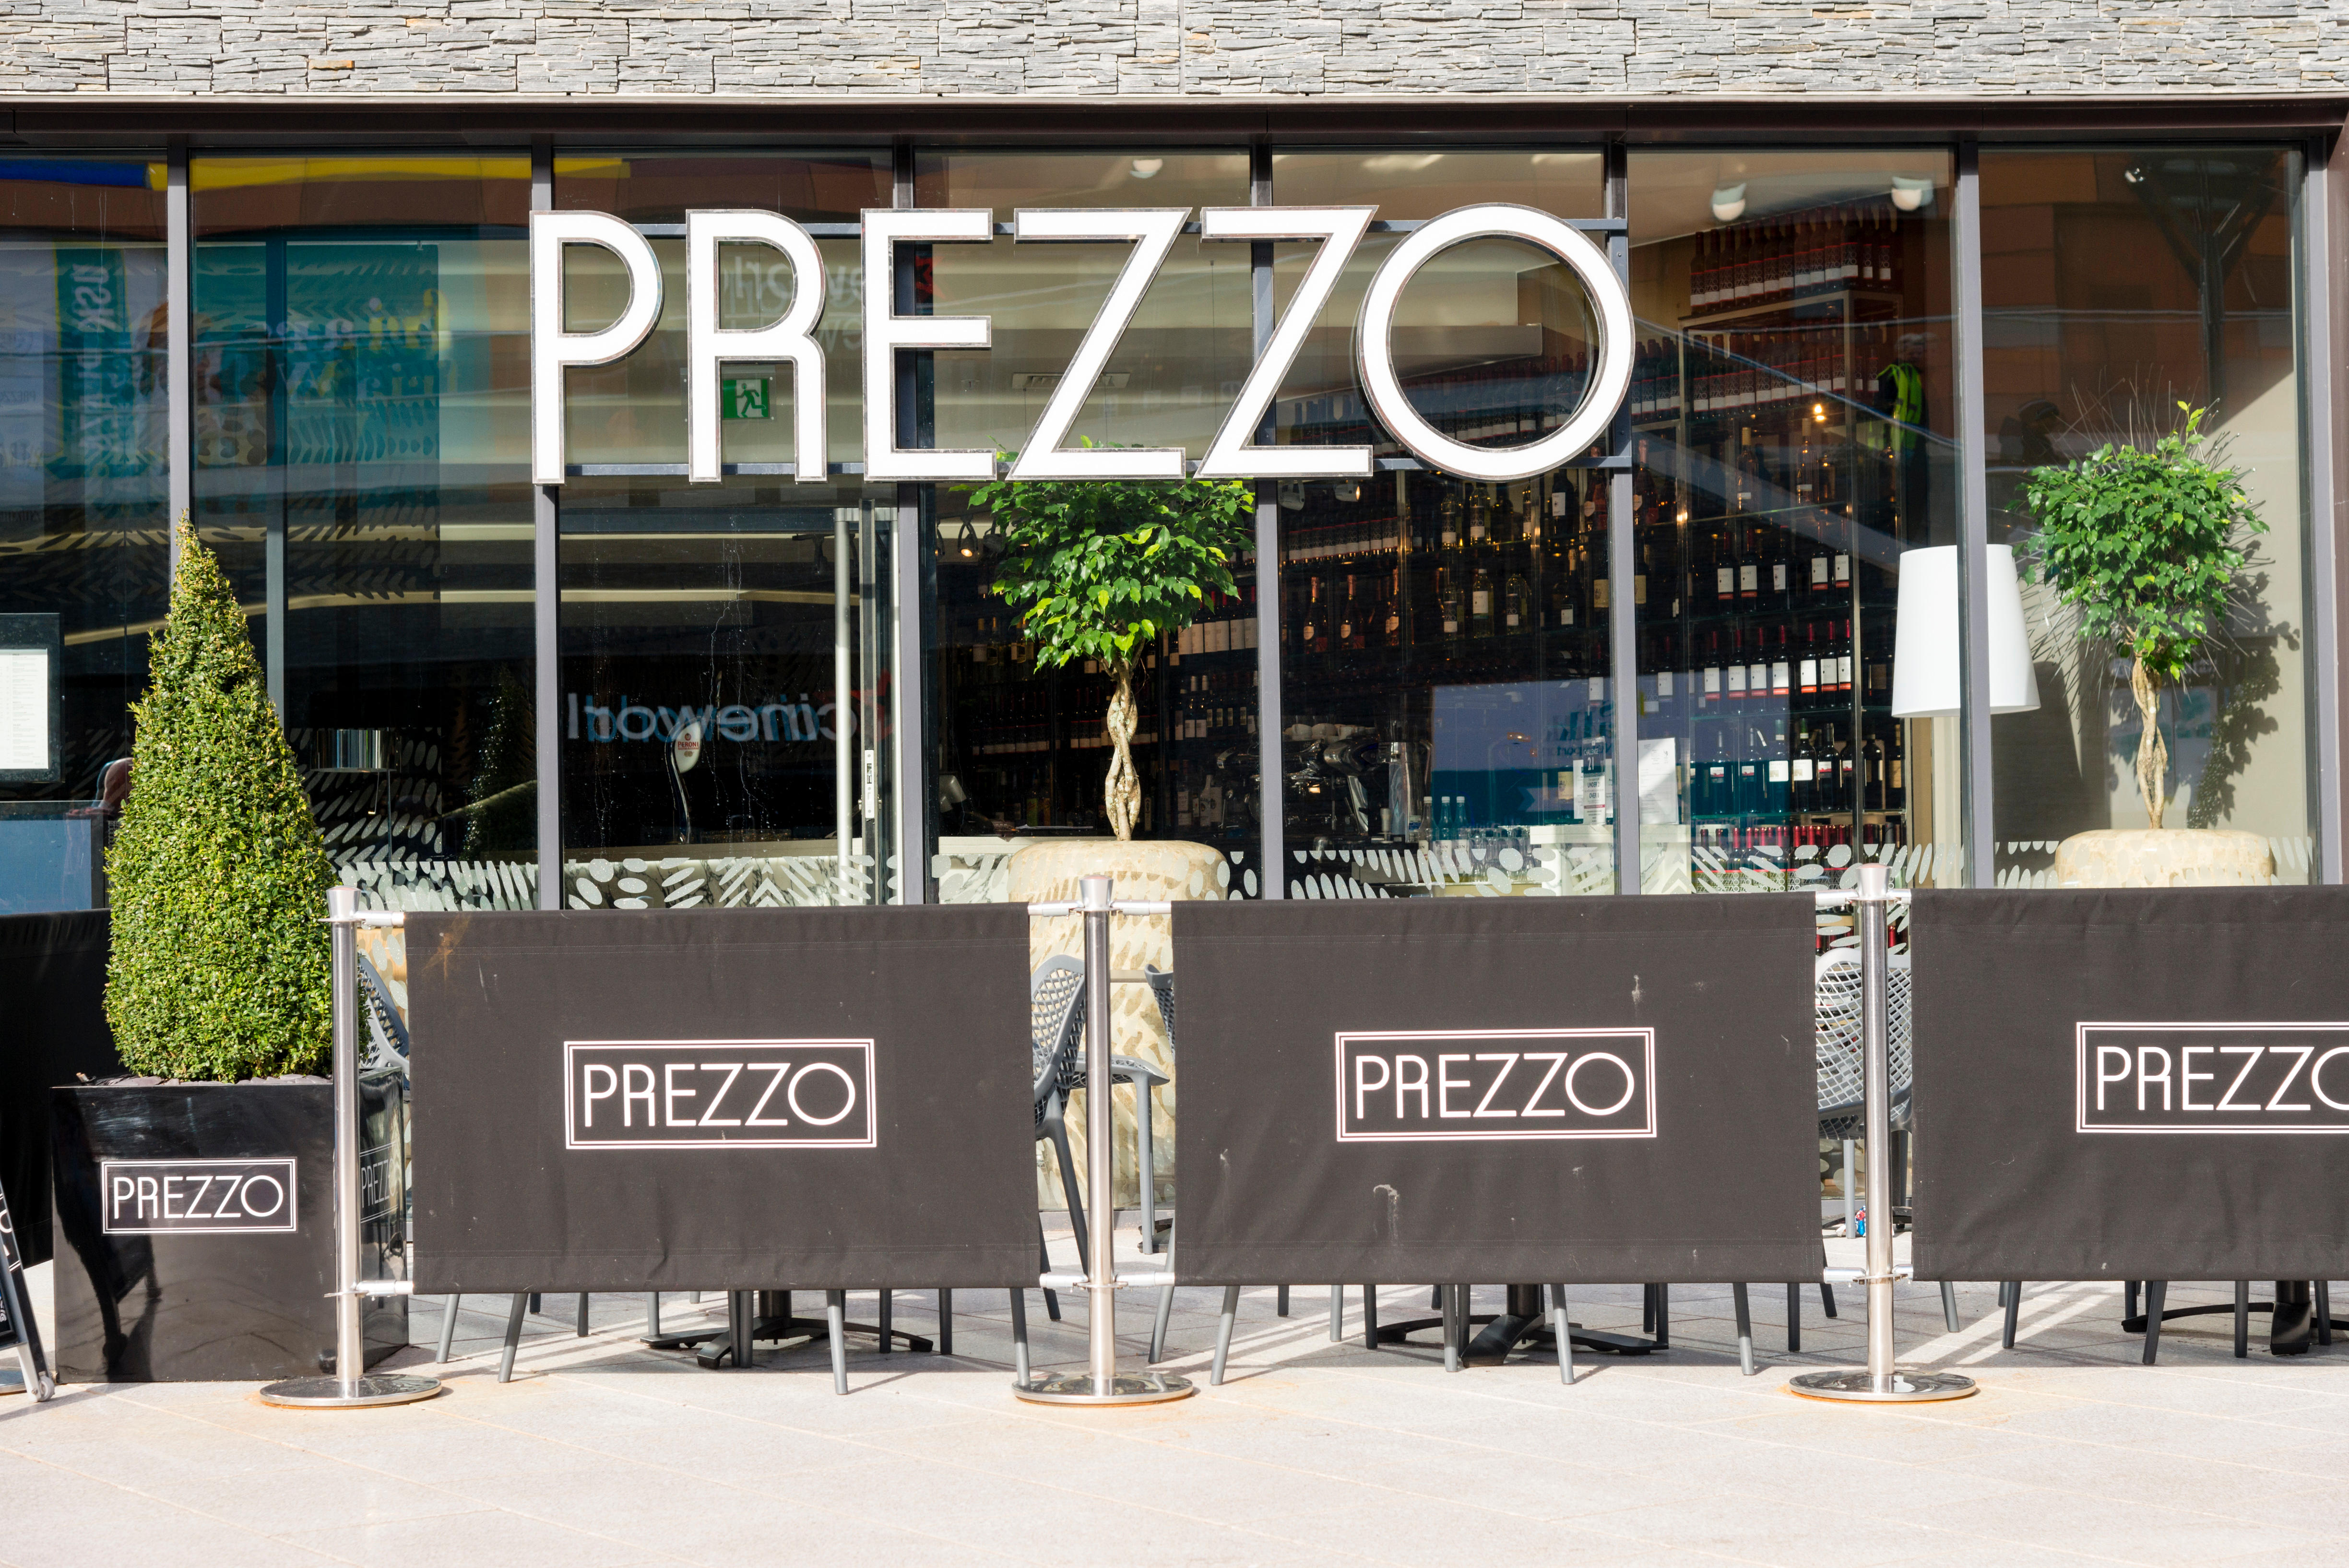 Prezzo is shutting some of its restaurants for good, with 216 jobs expected to go